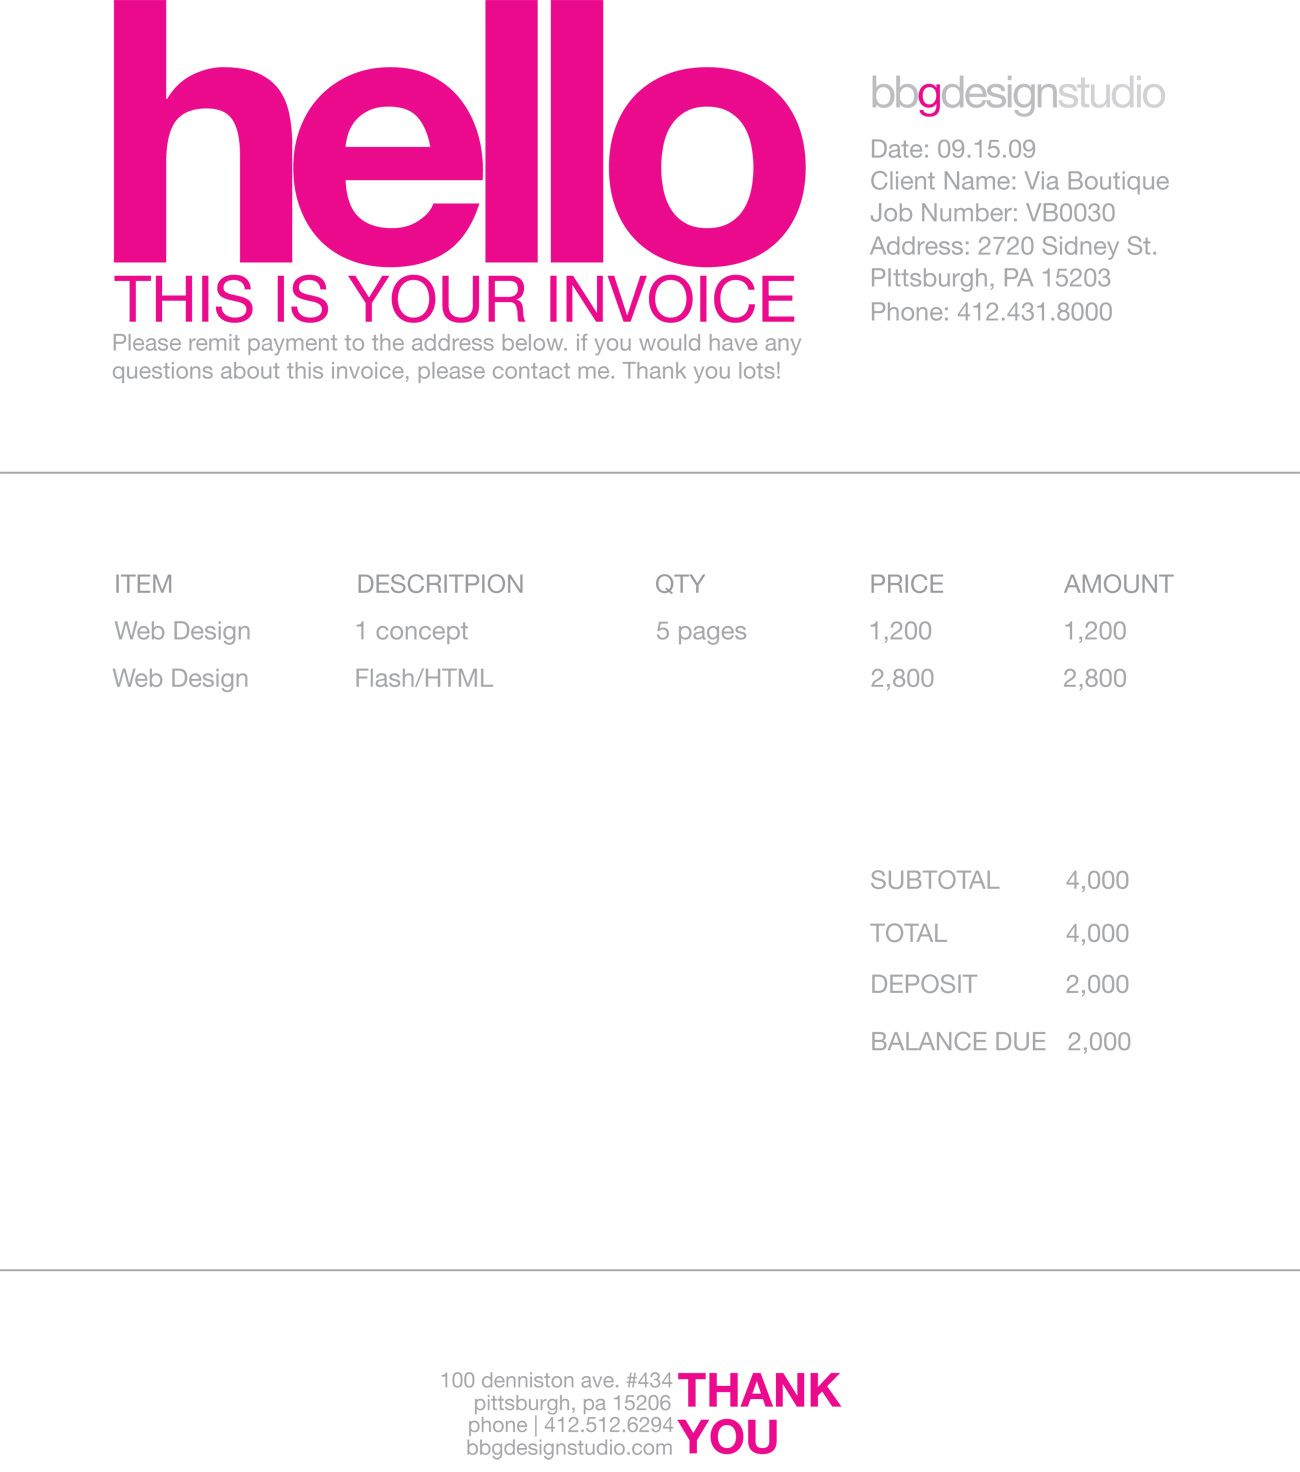 Totallocalus  Gorgeous  Images About Invoice Design On Pinterest With Fascinating Commercial Proforma Invoice Besides Free Download Invoice Furthermore Invoice Scan With Endearing Invoice Program For Small Business Also Microsoft Invoicing In Addition Free Printable Invoice Template Pdf And Fill In Invoice Template As Well As Readsoft Invoices Additionally Time Tracking Invoicing From Pinterestcom With Totallocalus  Fascinating  Images About Invoice Design On Pinterest With Endearing Commercial Proforma Invoice Besides Free Download Invoice Furthermore Invoice Scan And Gorgeous Invoice Program For Small Business Also Microsoft Invoicing In Addition Free Printable Invoice Template Pdf From Pinterestcom